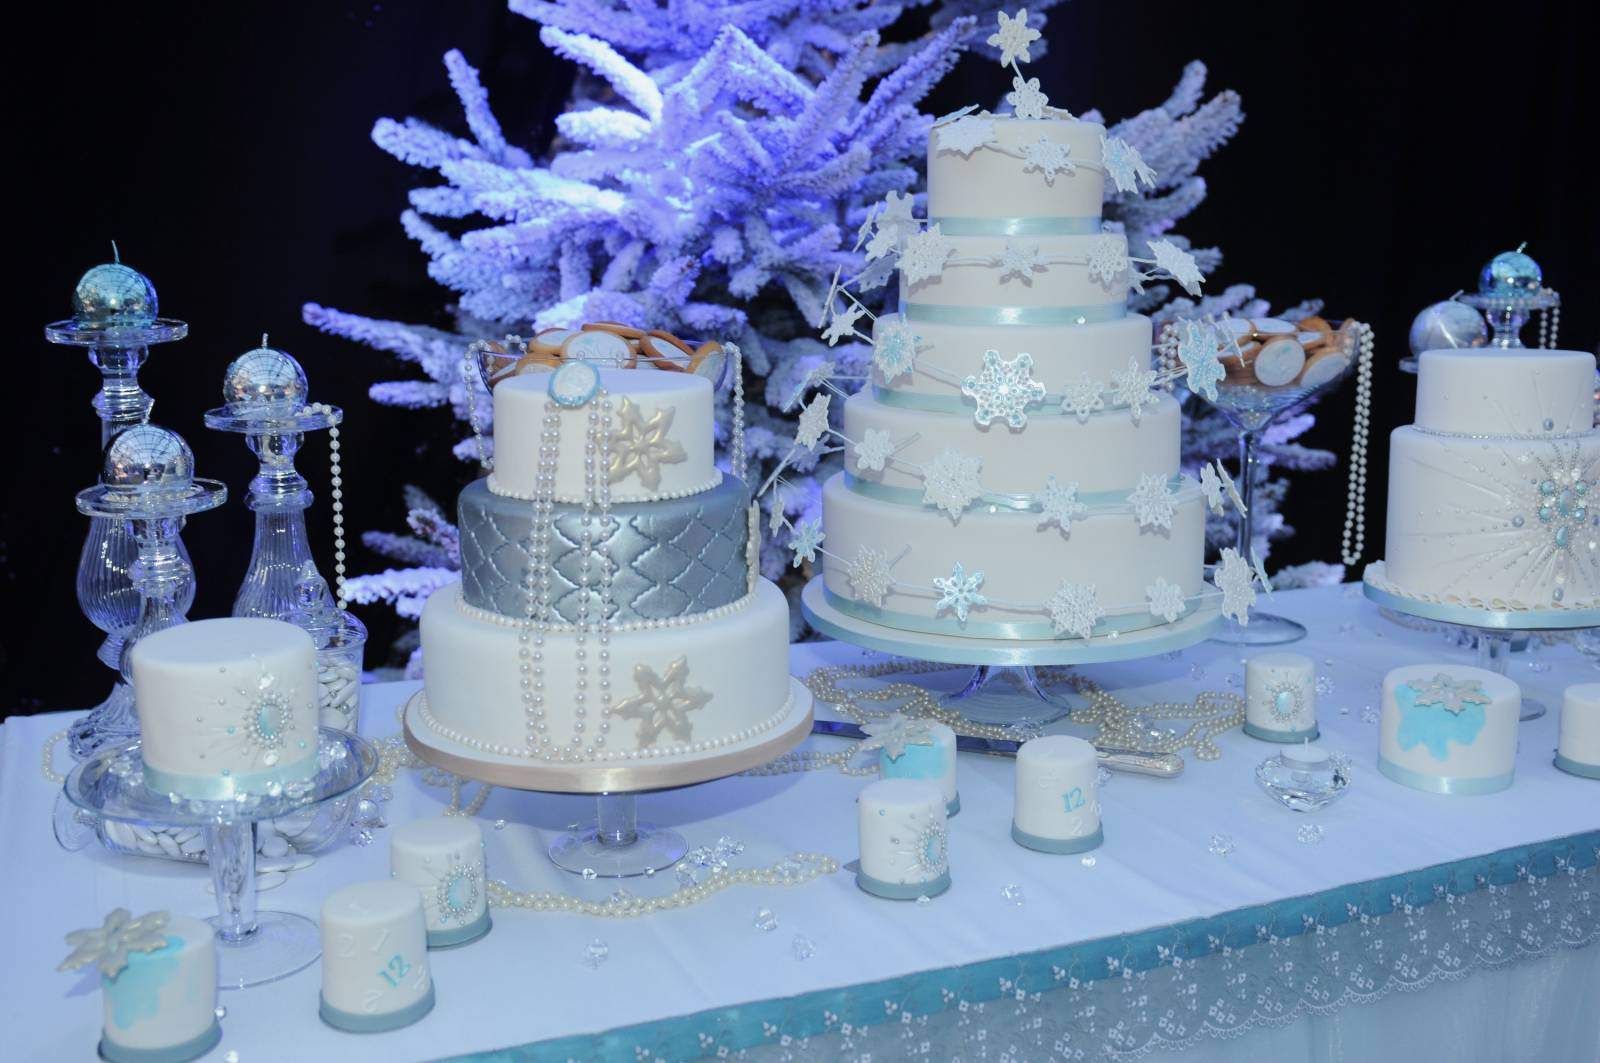 Be Your Guest - Wedding Planner - House of Weddings01-WEDDING CAKE-2012-ClicArts